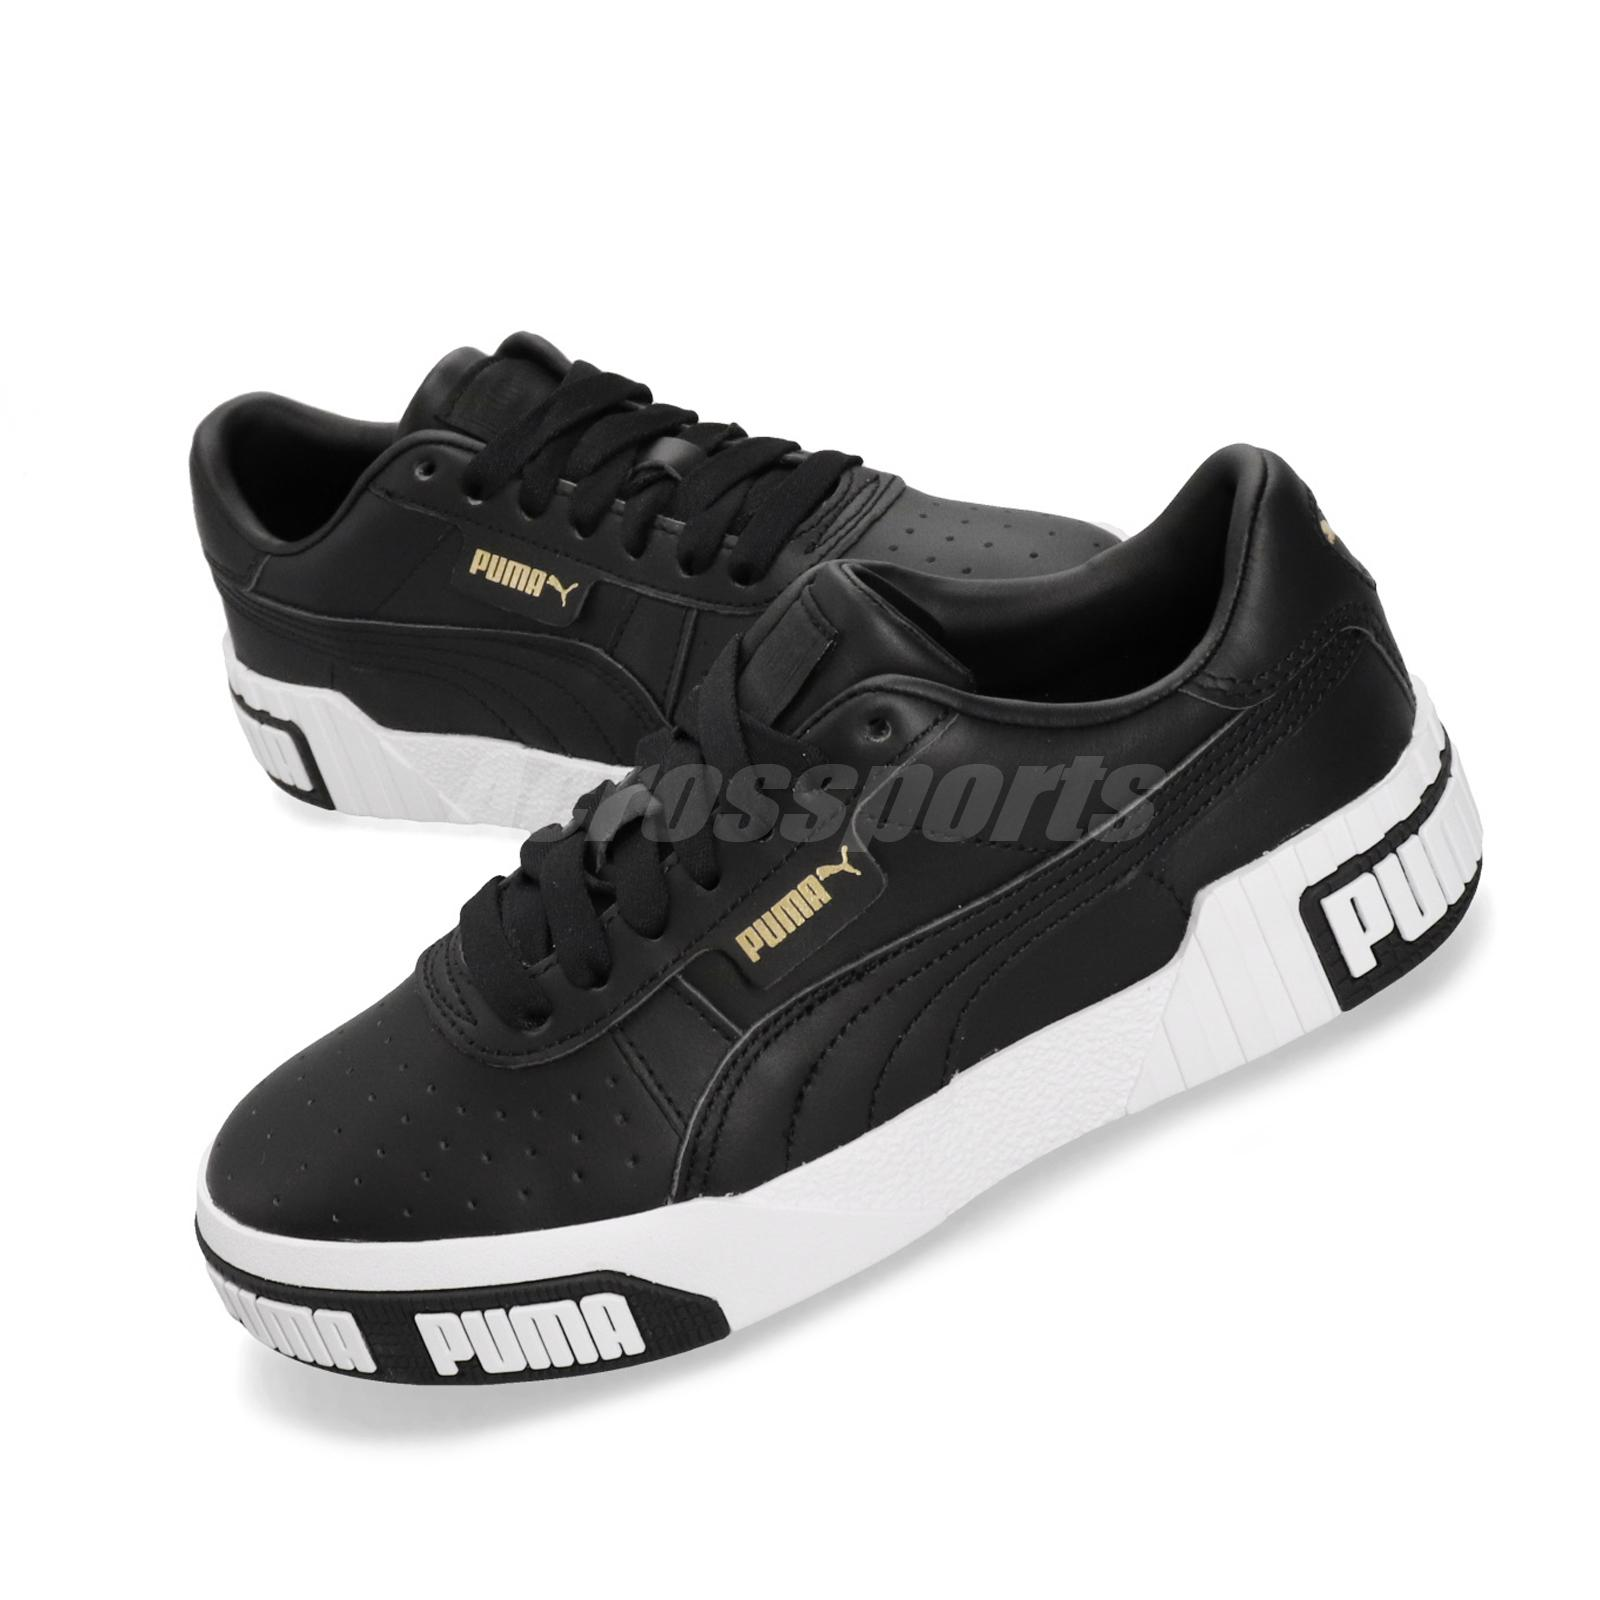 Details about Puma Cali Bold Wns Black Gold White Women Casual Fashion  Shoes Sneaker 370811-03